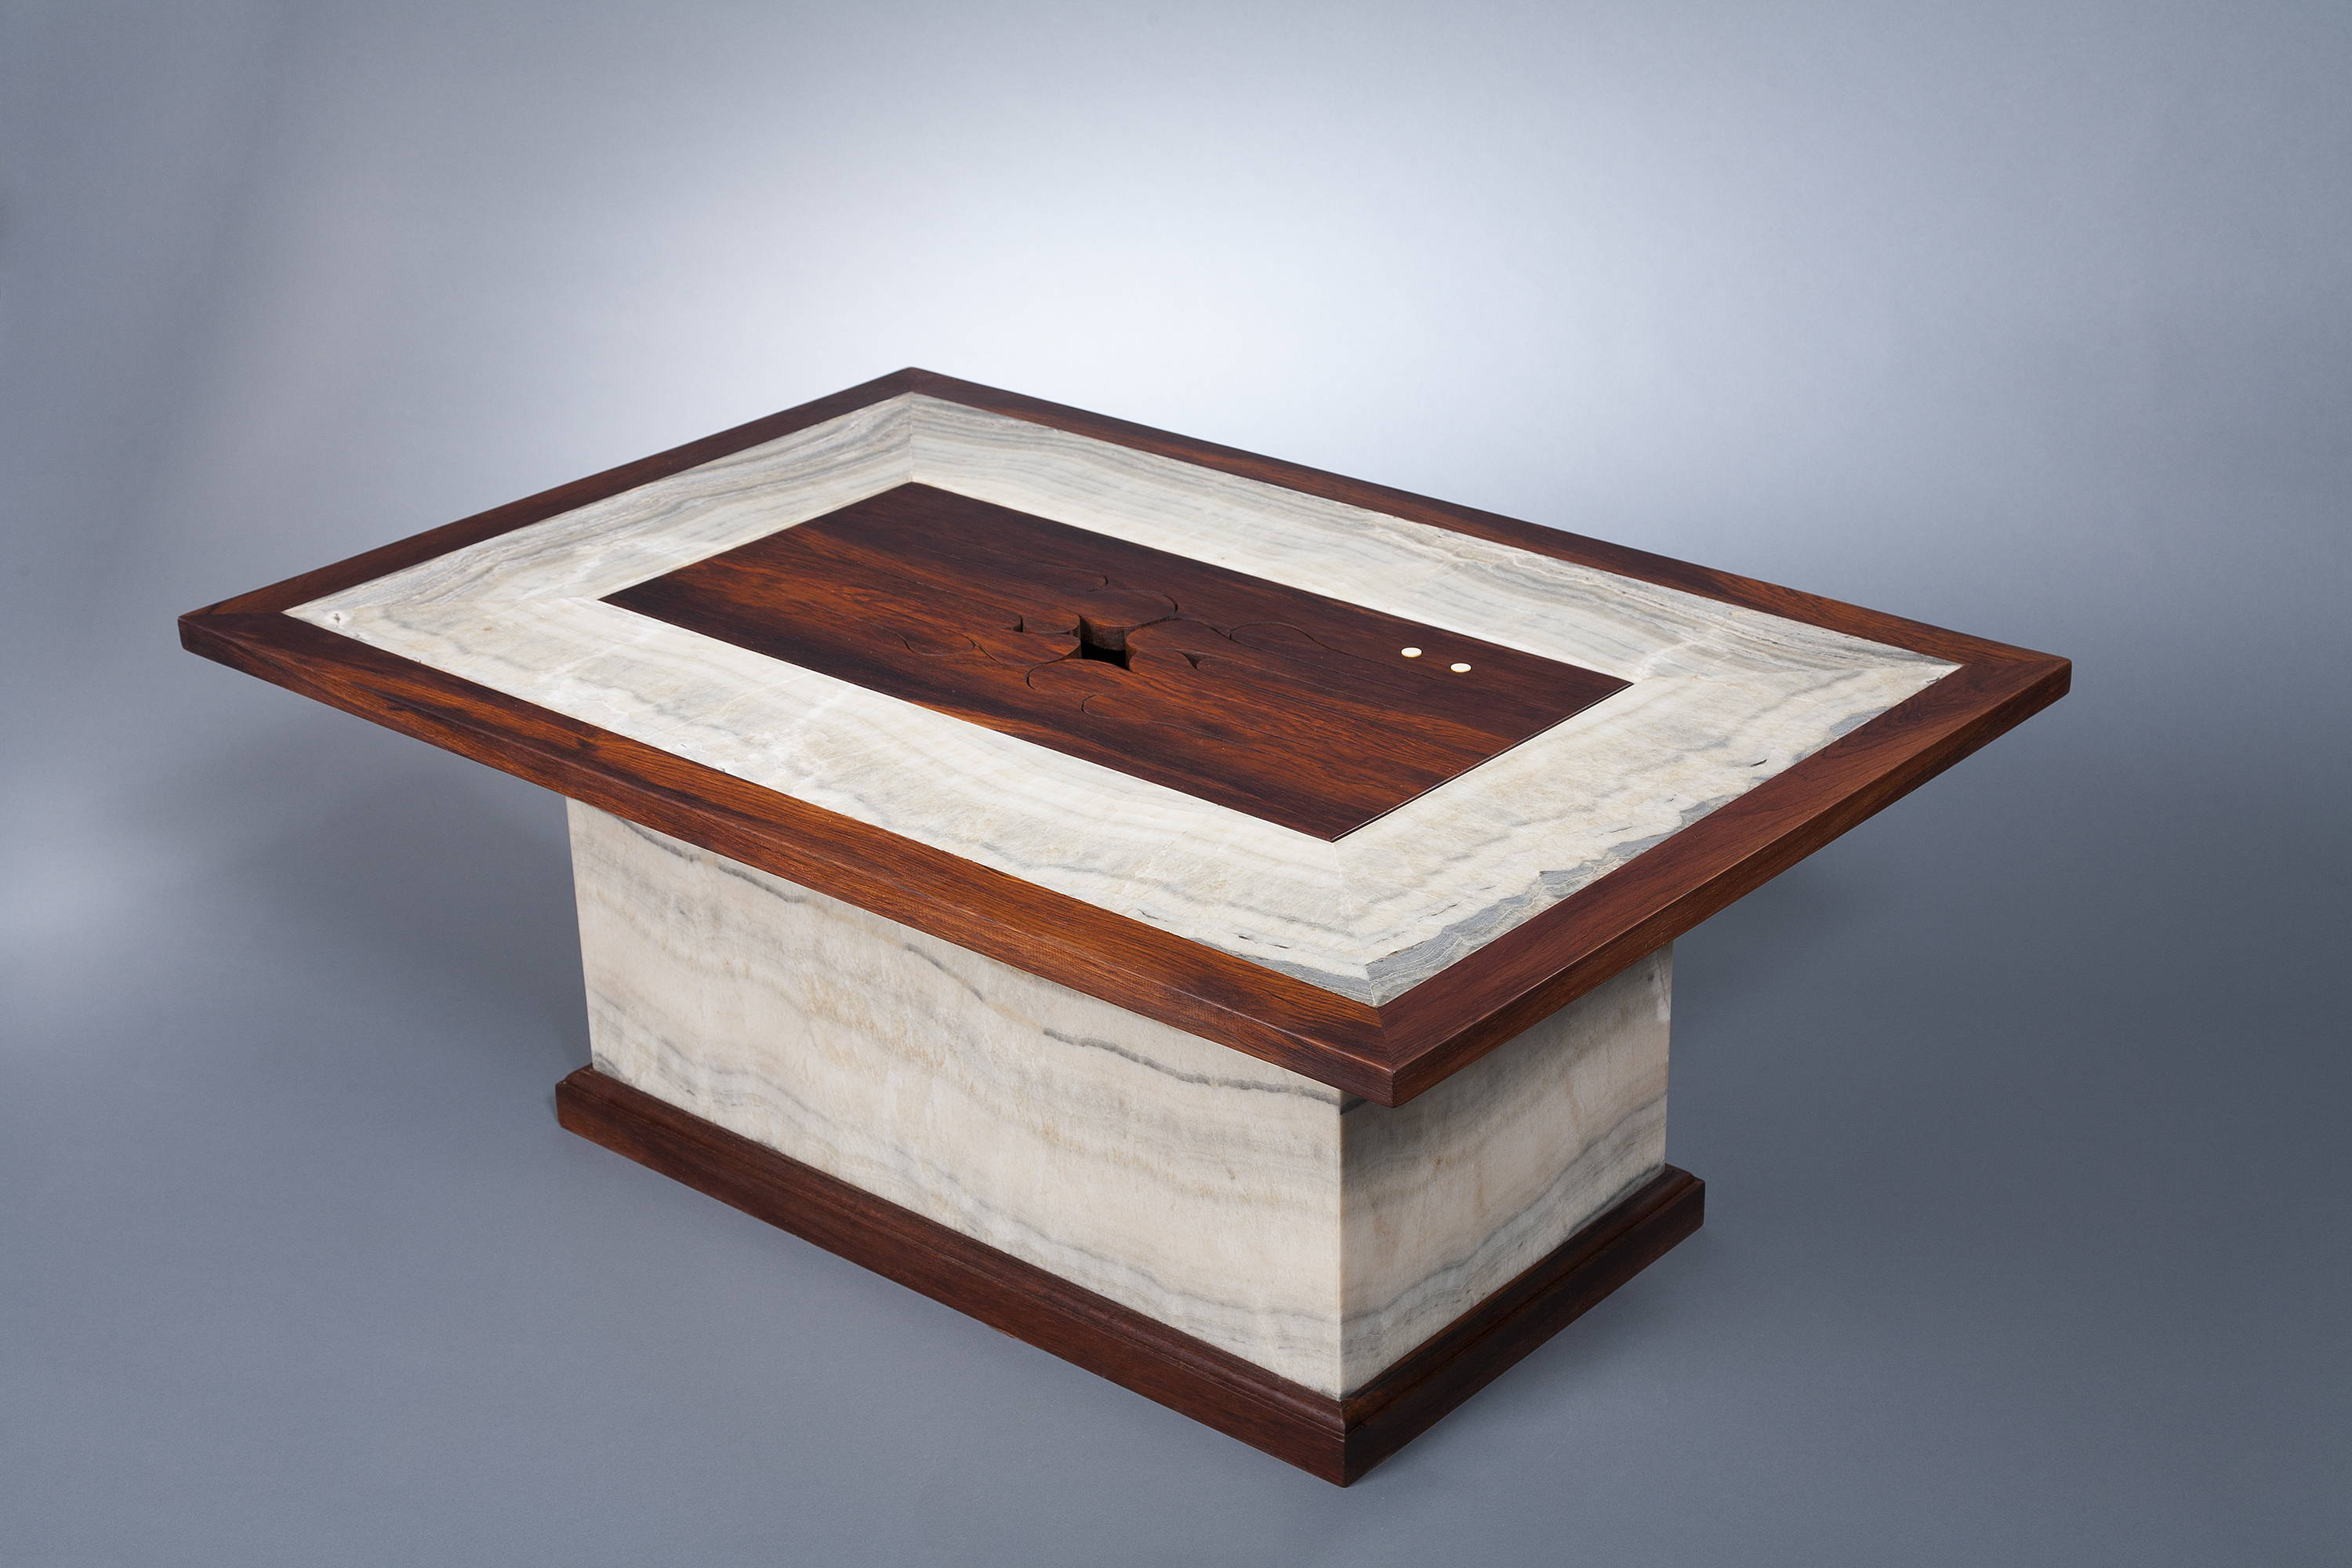 12-key wooden tongue drum coffee table